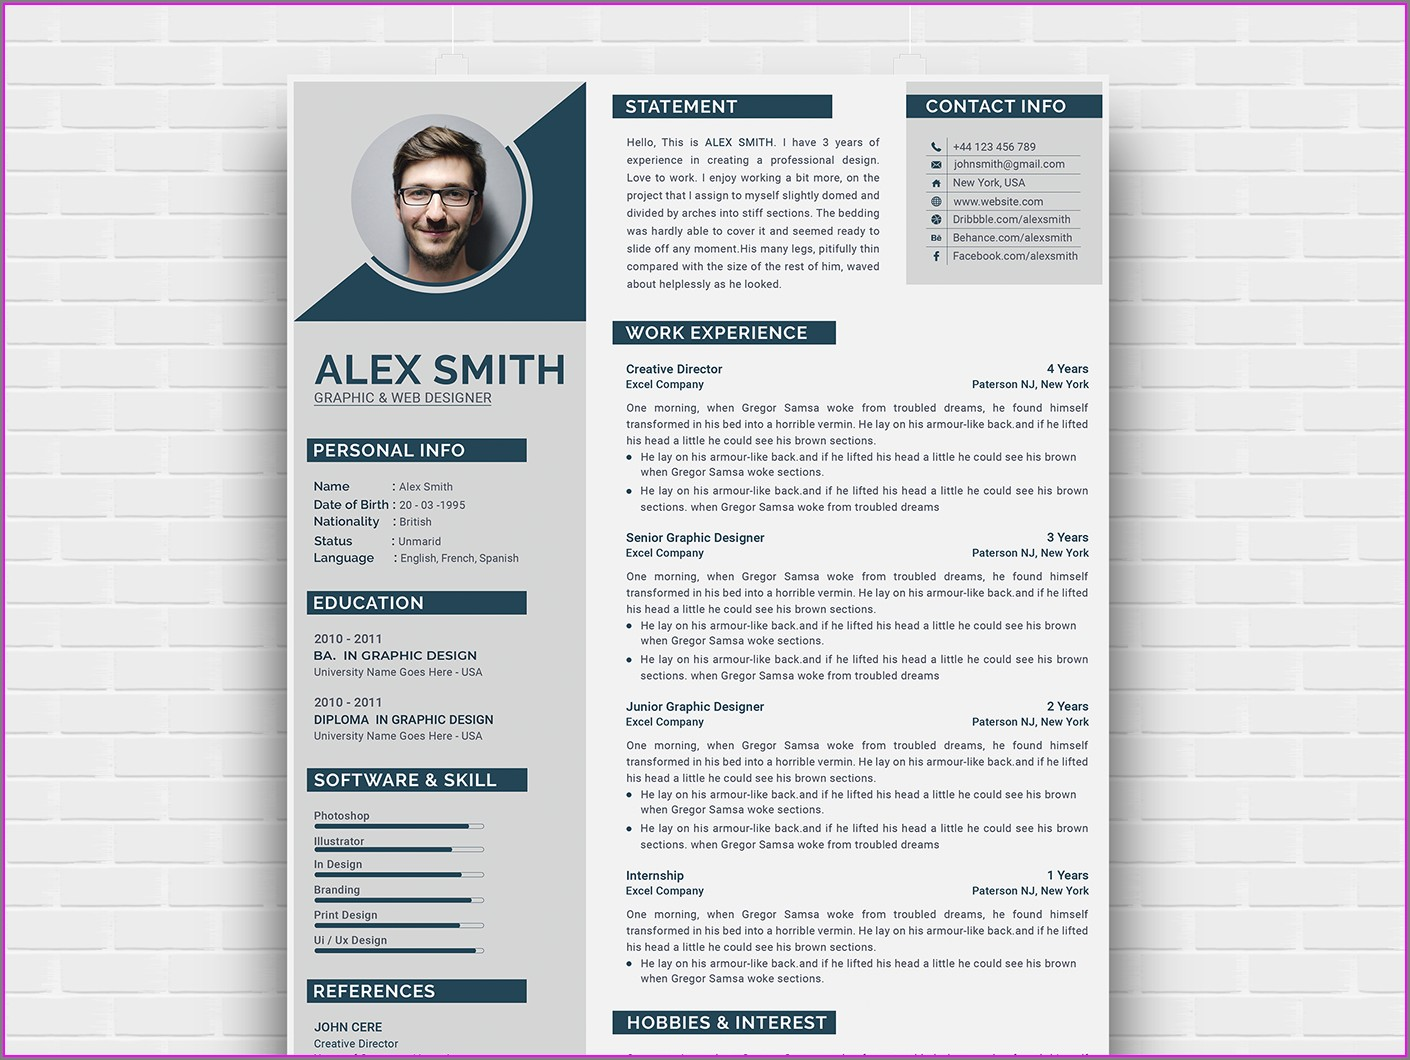 Curriculum Vitae Template Free Download South Africa